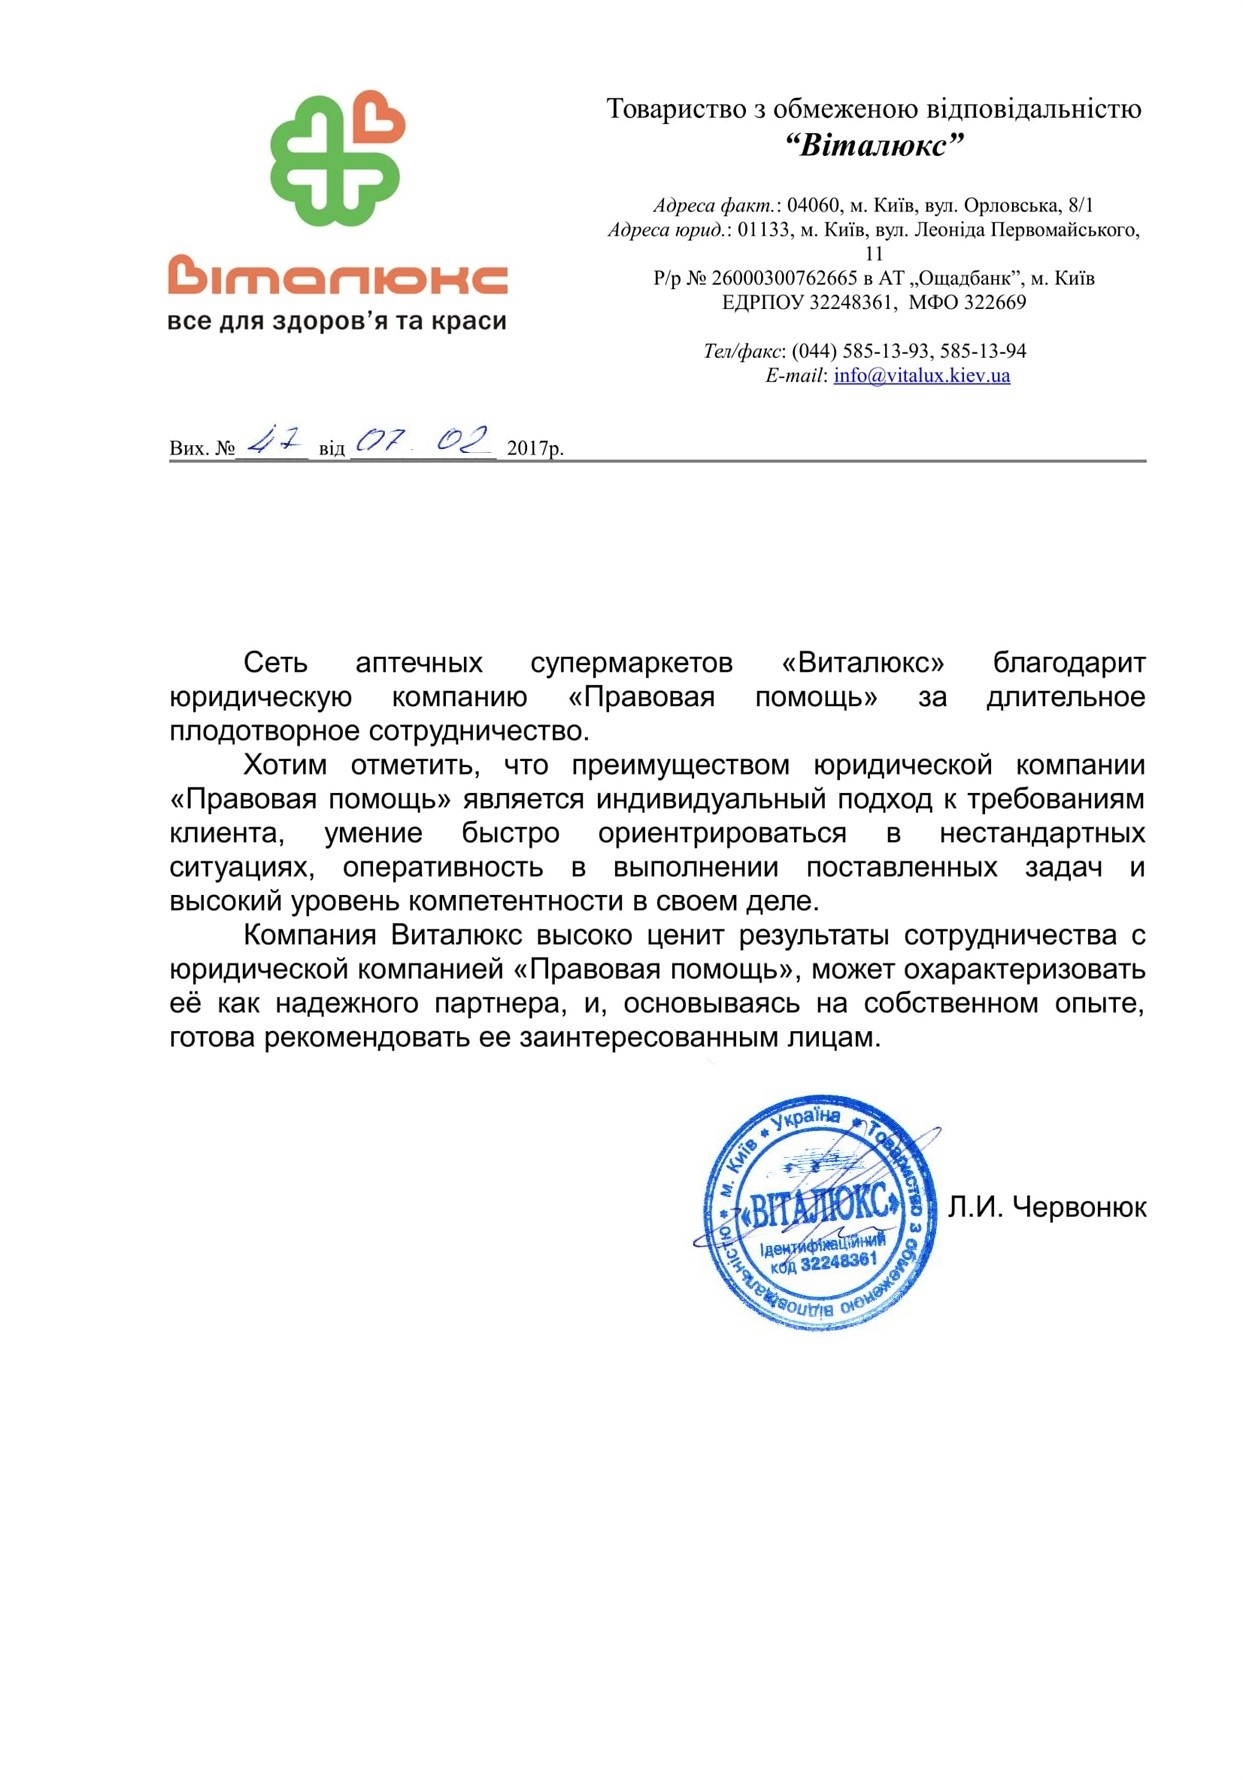 All letters of appreciation network of pharmacies vitalux expresses gratitude to law firm pravova dopomoga for long lasting and fruitful cooperation thecheapjerseys Images